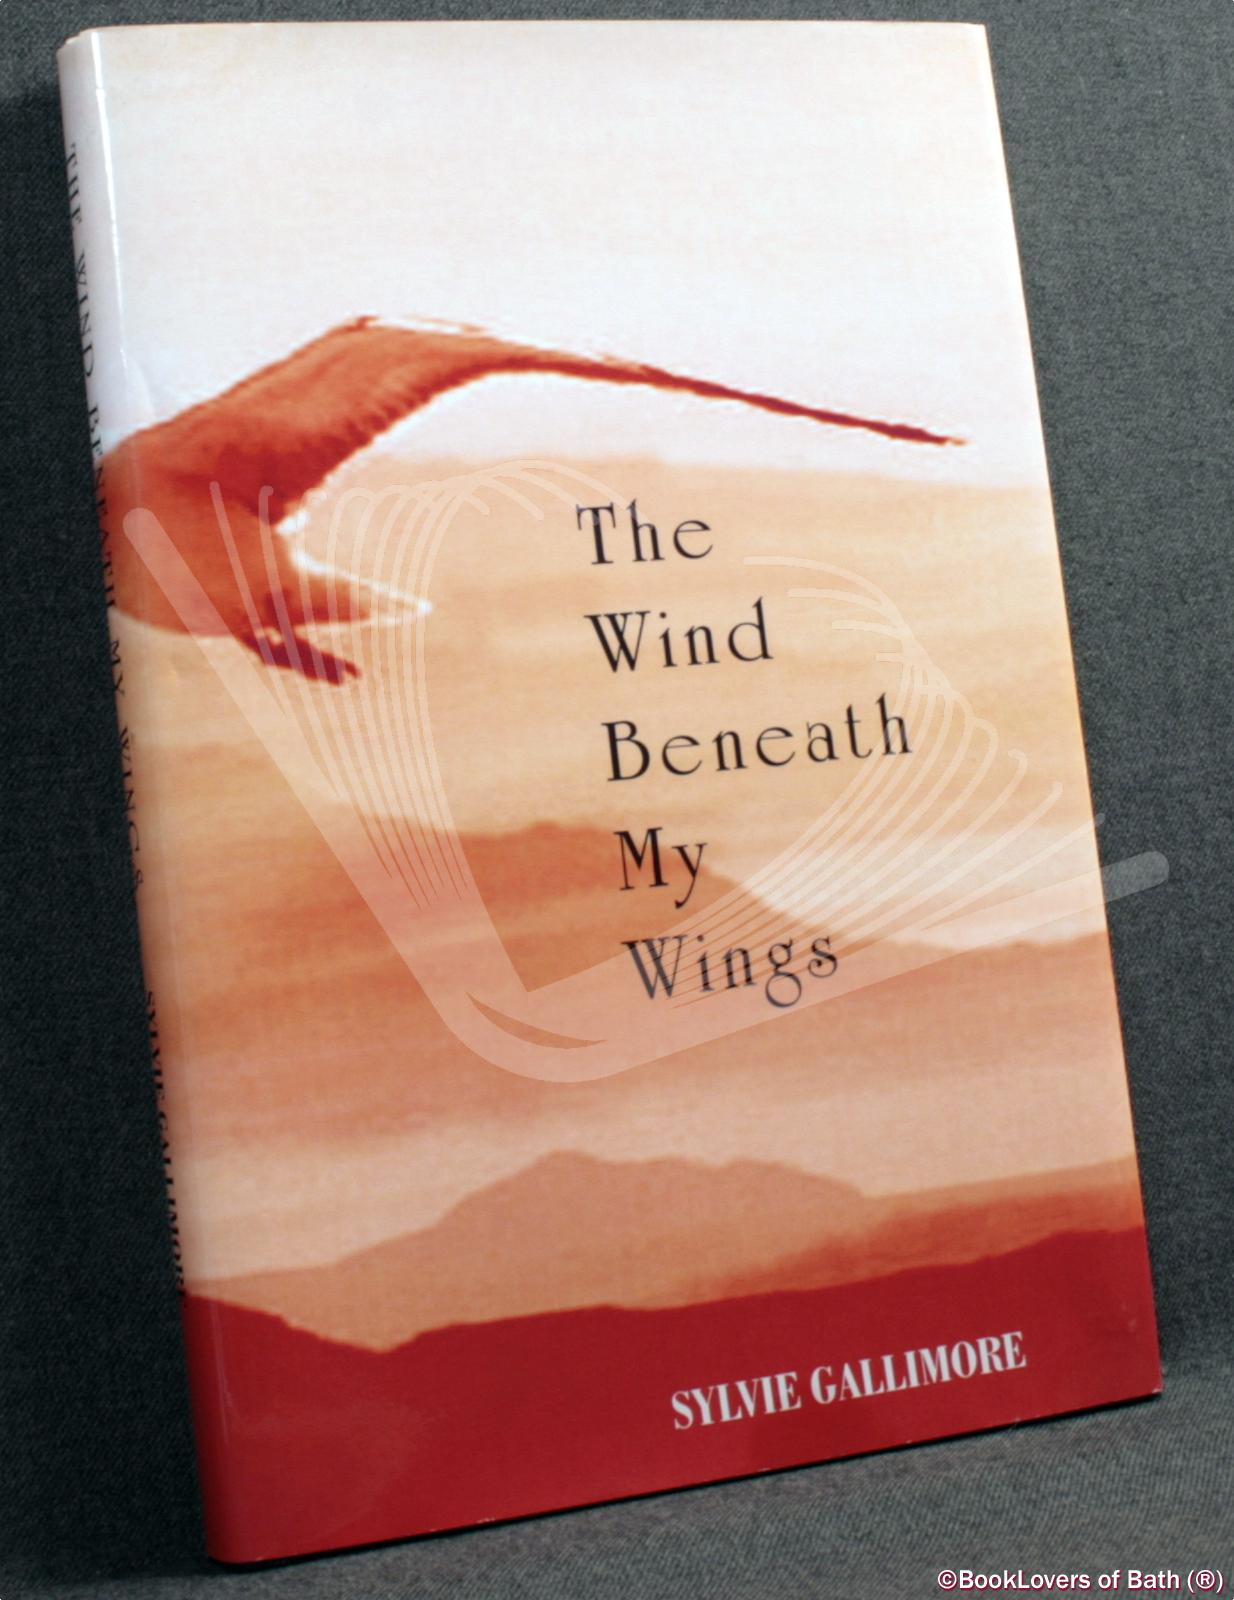 The Wind Beneath My Wings - Sylvie Gallimore